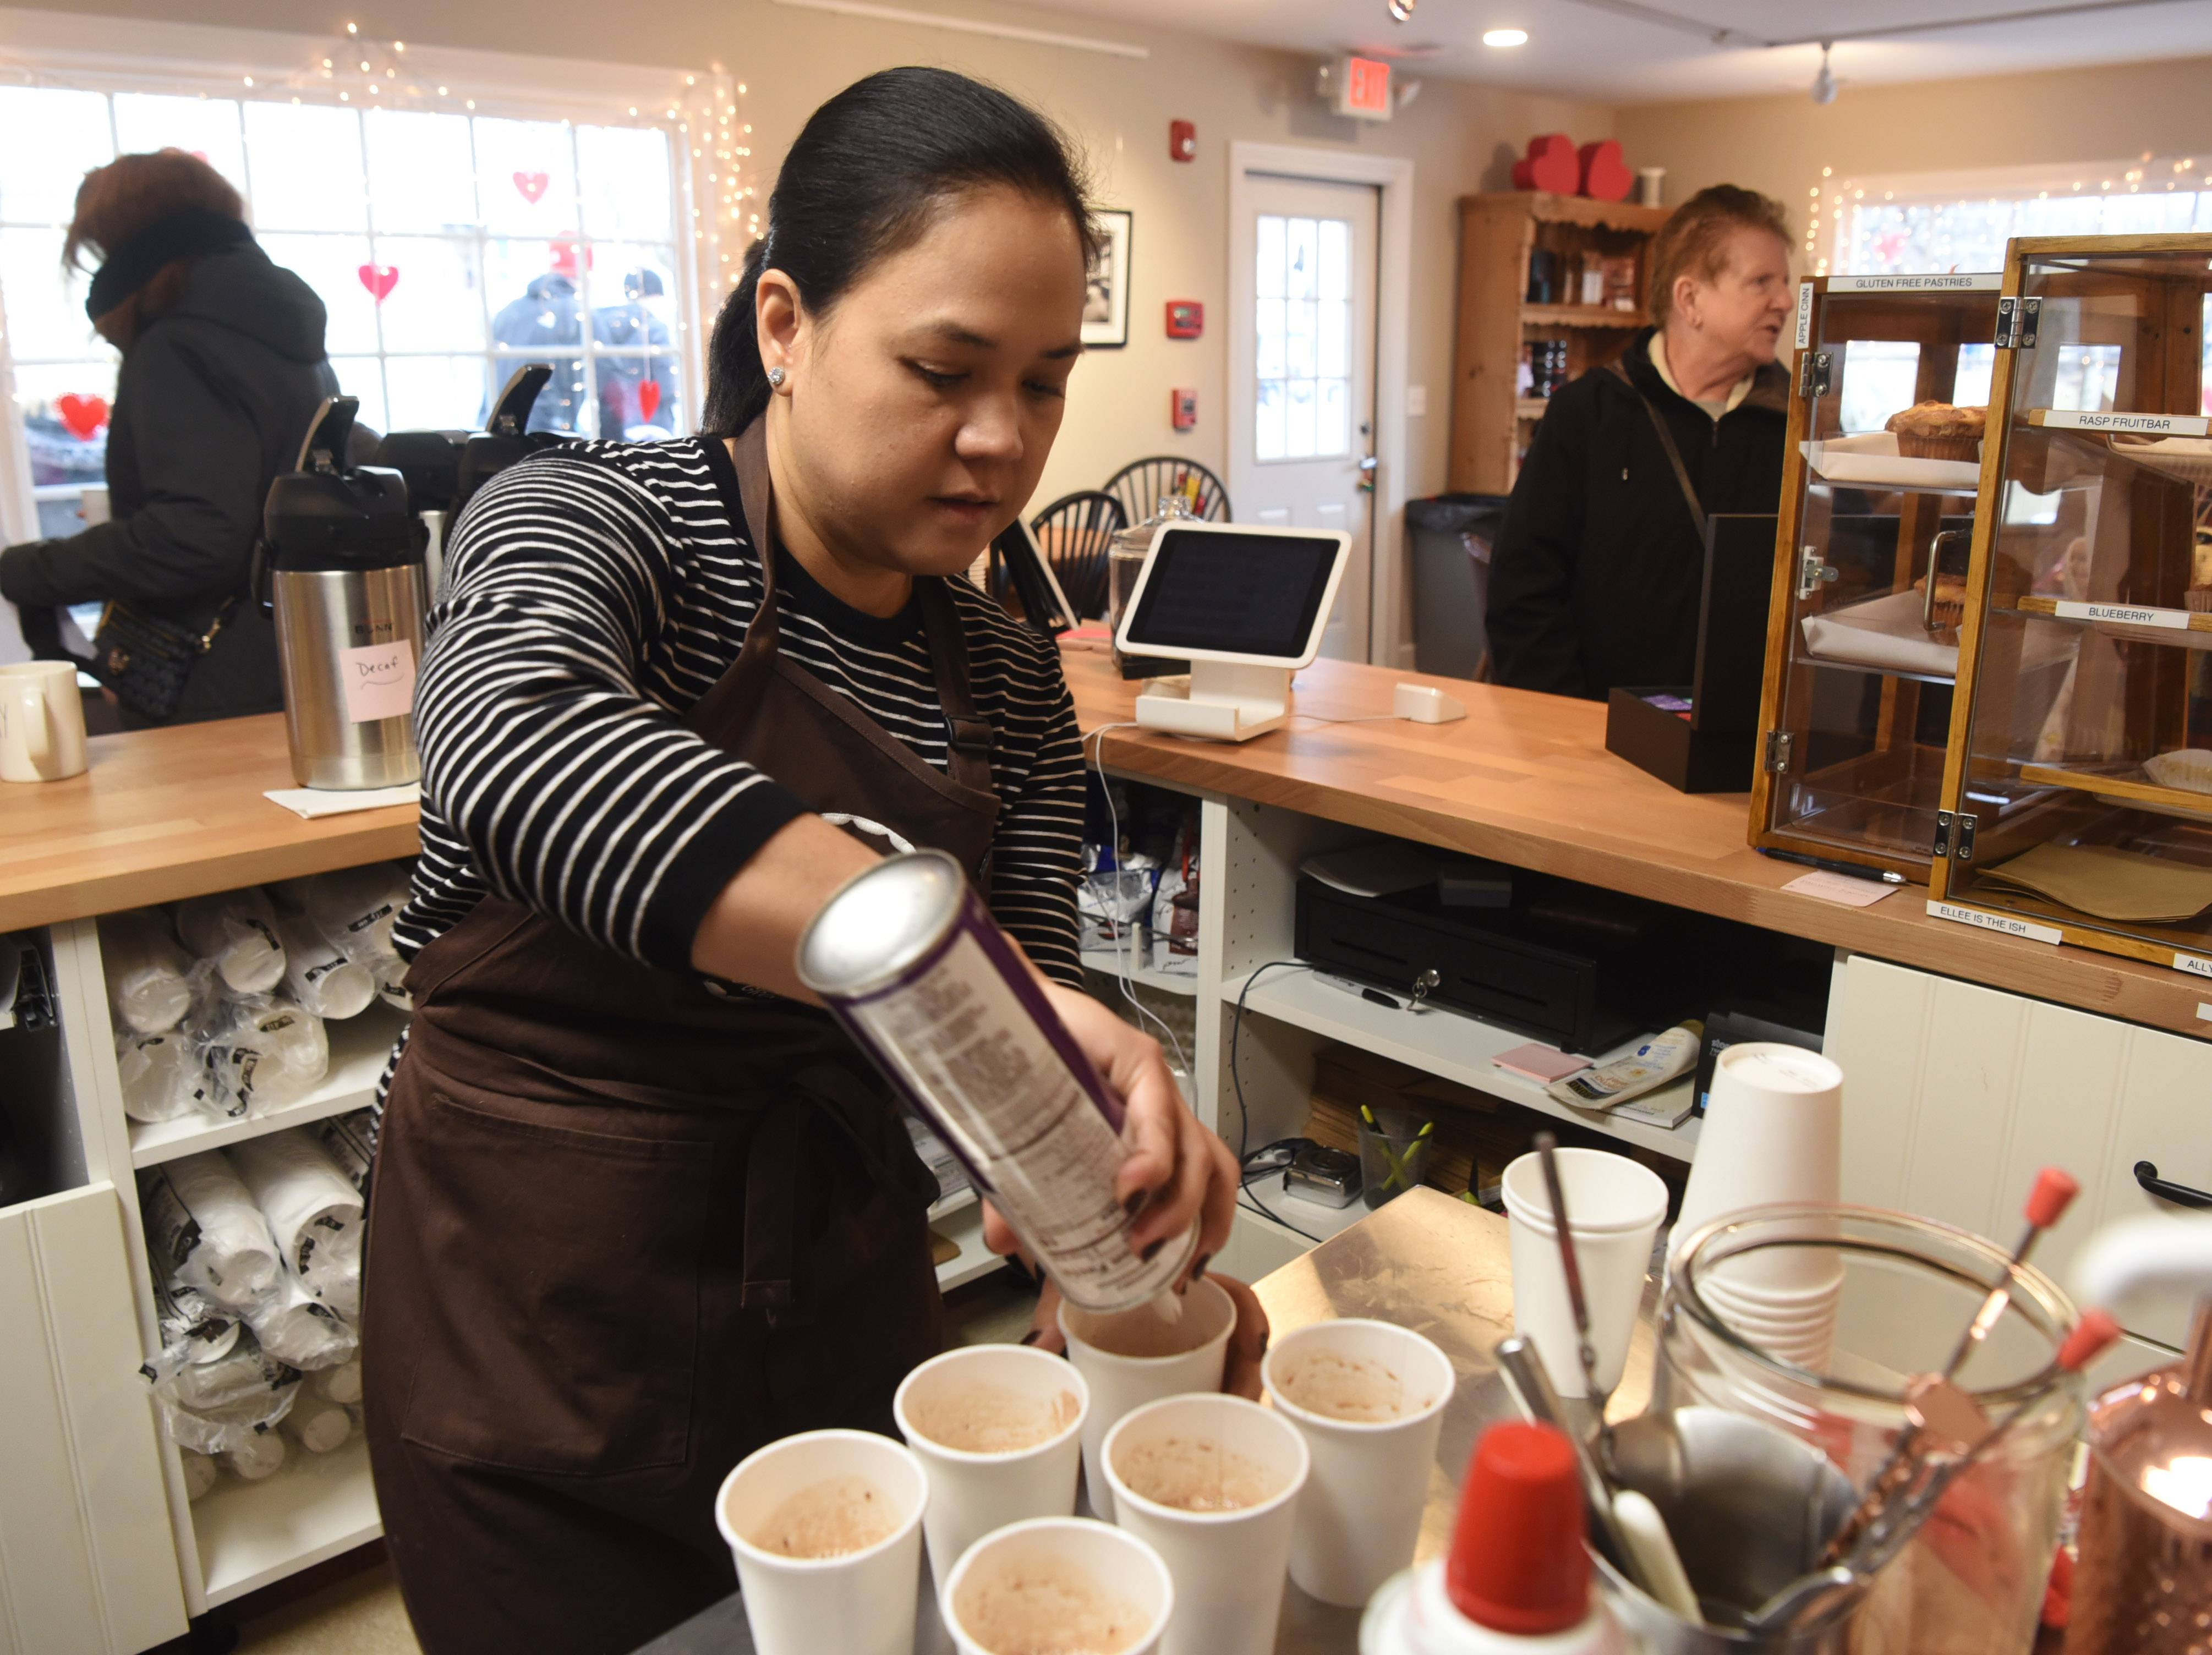 Ethel Berger prepares hot chocolate at the Long Grove Coffee Co. during the Long Grove Cocoa Crawl Saturday.